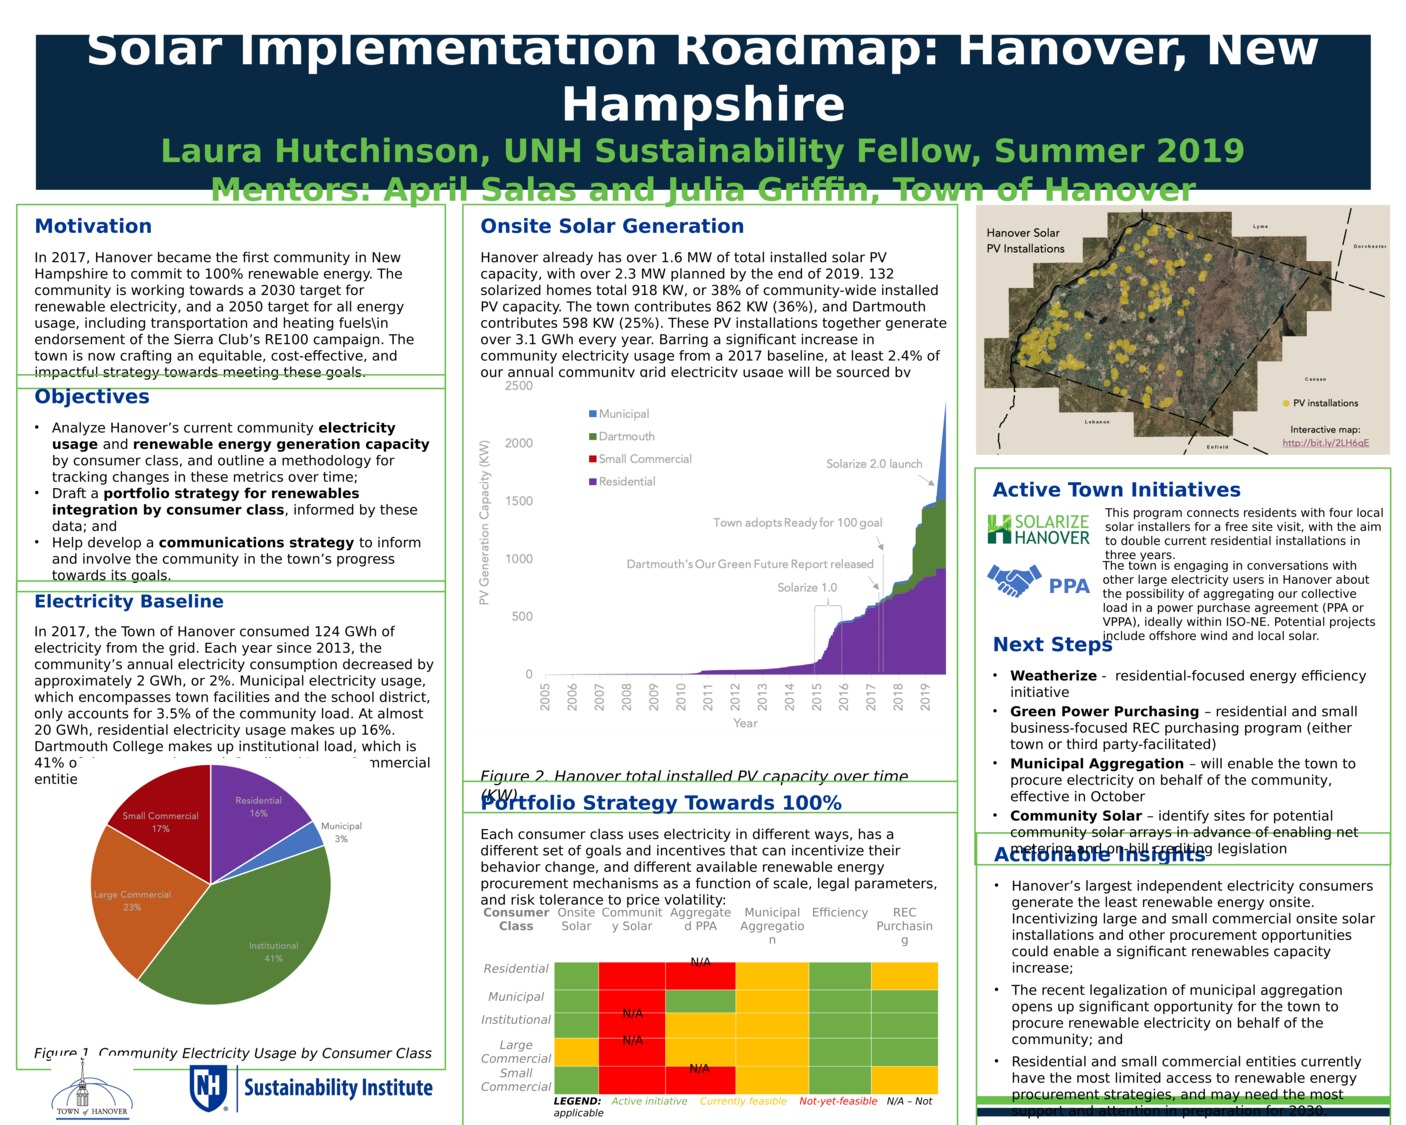 Solar Implementation Roadmap: Hanover, New Hampshire by lh1148